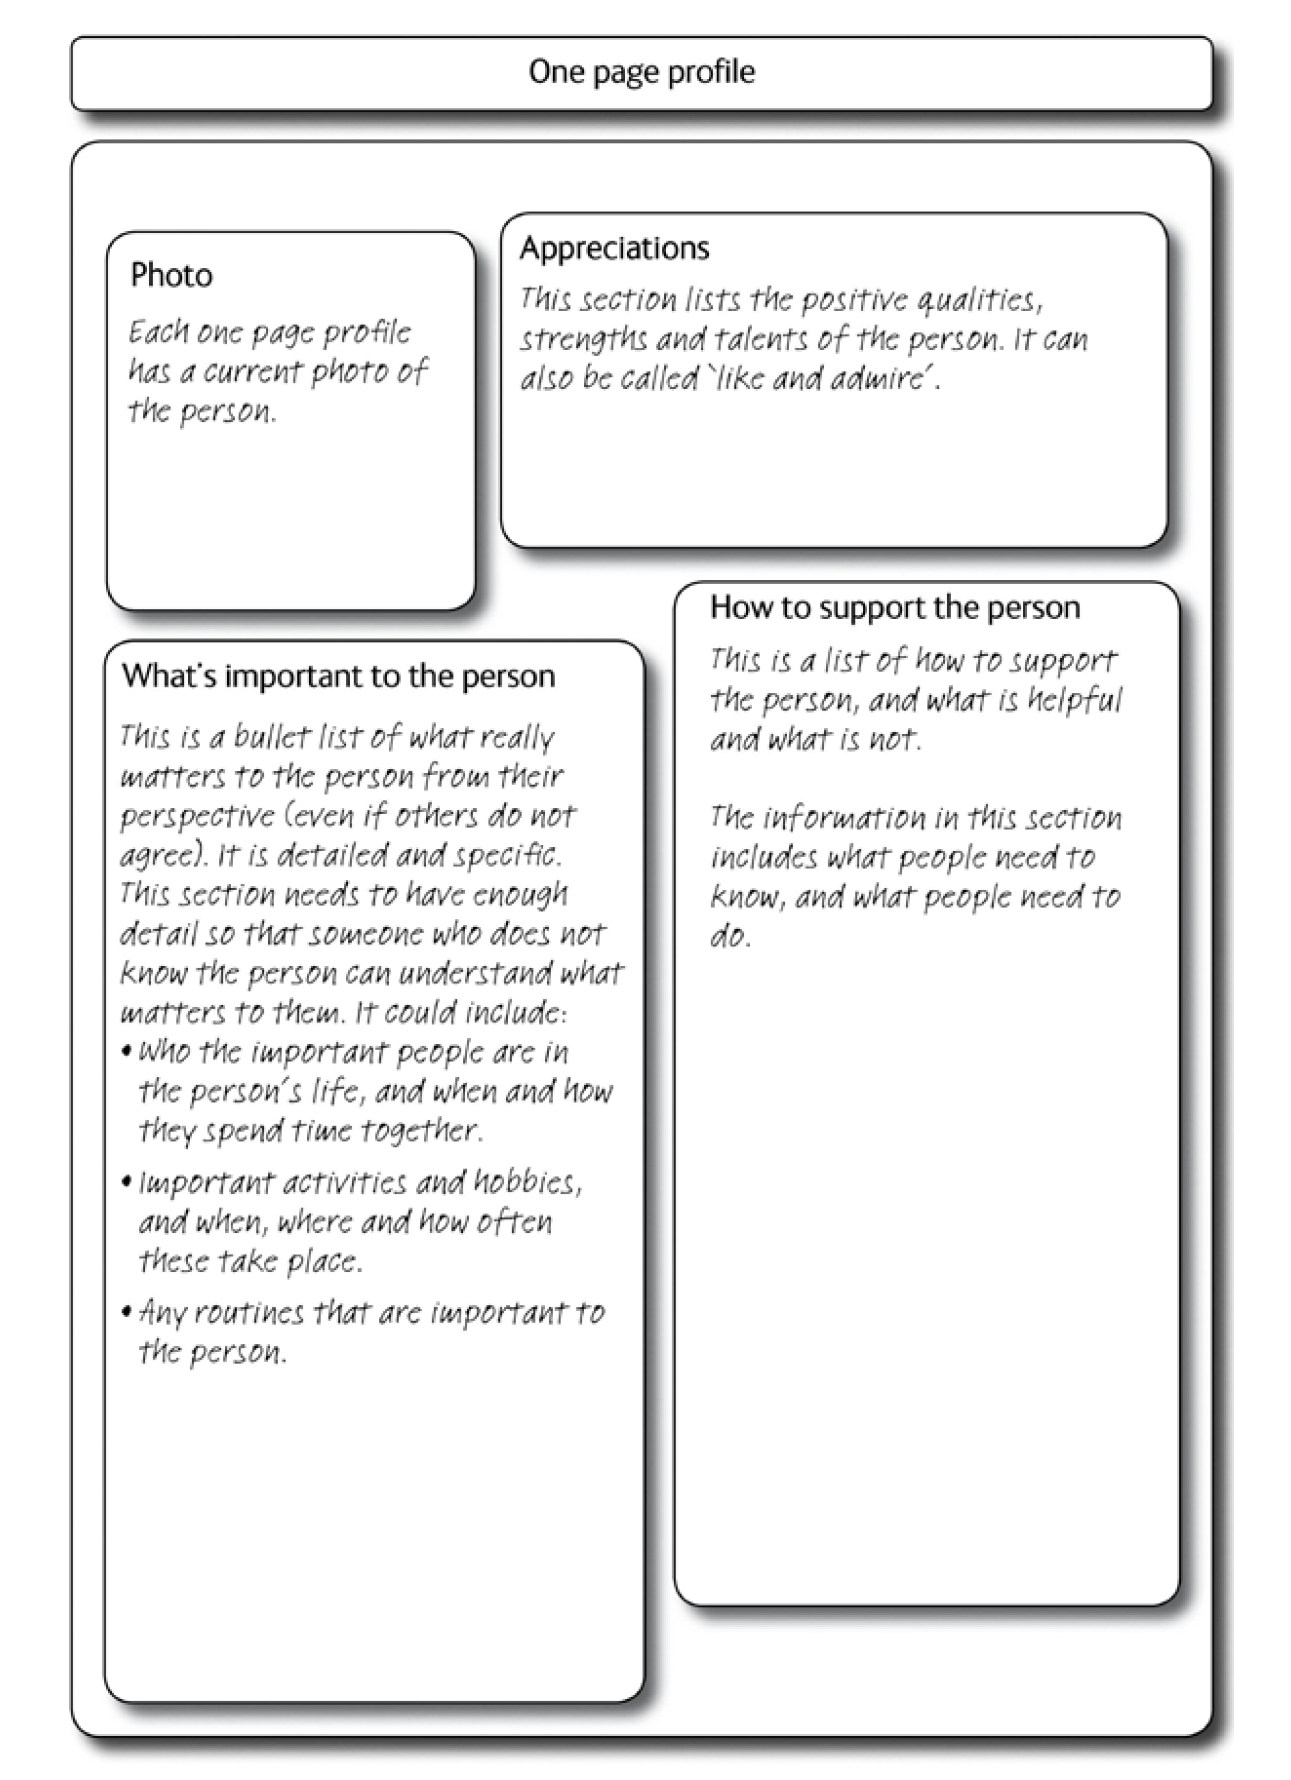 How To One Page Profile And What They Are Via Helenhsauk